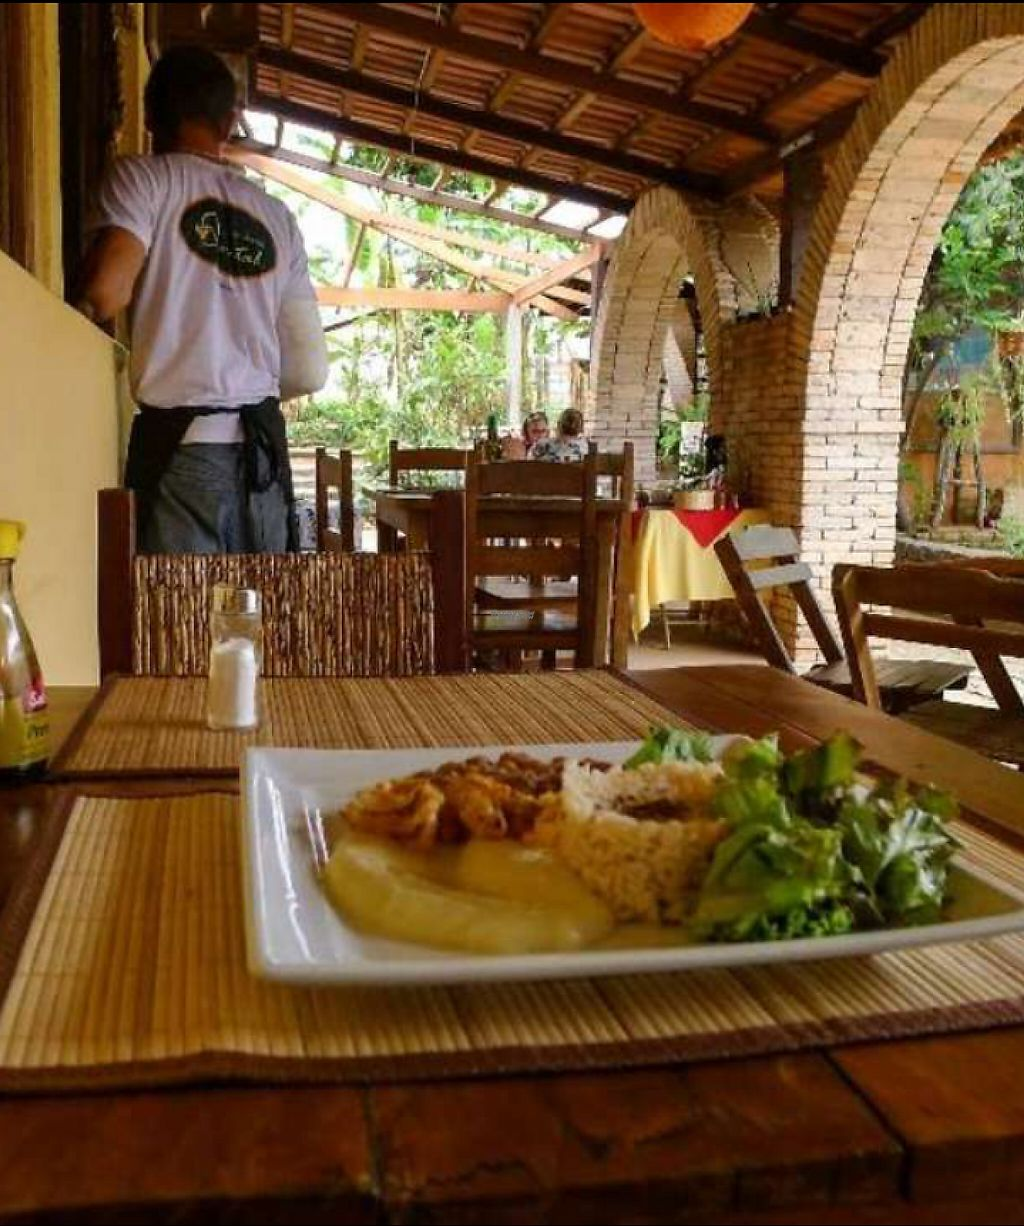 """Photo of Cozinha de Quintal  by <a href=""""/members/profile/bfeitosa"""">bfeitosa</a> <br/>Main course <br/> January 31, 2017  - <a href='/contact/abuse/image/86393/220178'>Report</a>"""